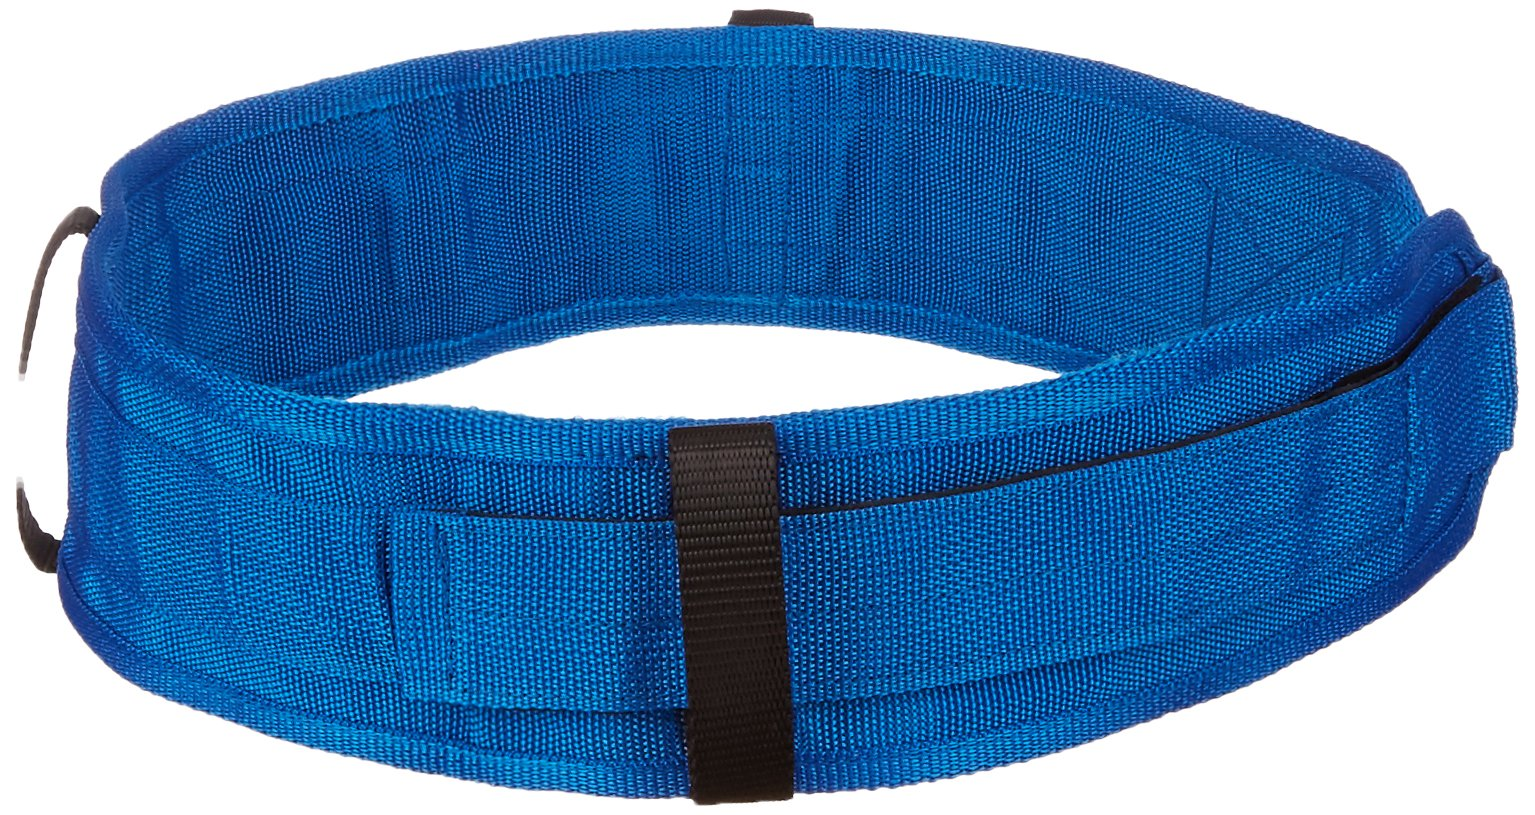 Sammons Preston Heavy-Duty Gait Belt, 48''-54'' Long Adjustable Transfer Belt, Medical Patient Lift Belt for Limited Mobility, Nurse & Caregiver Assistance Aid Device for Elderly & Handicapped, XX-Large by Sammons Preston